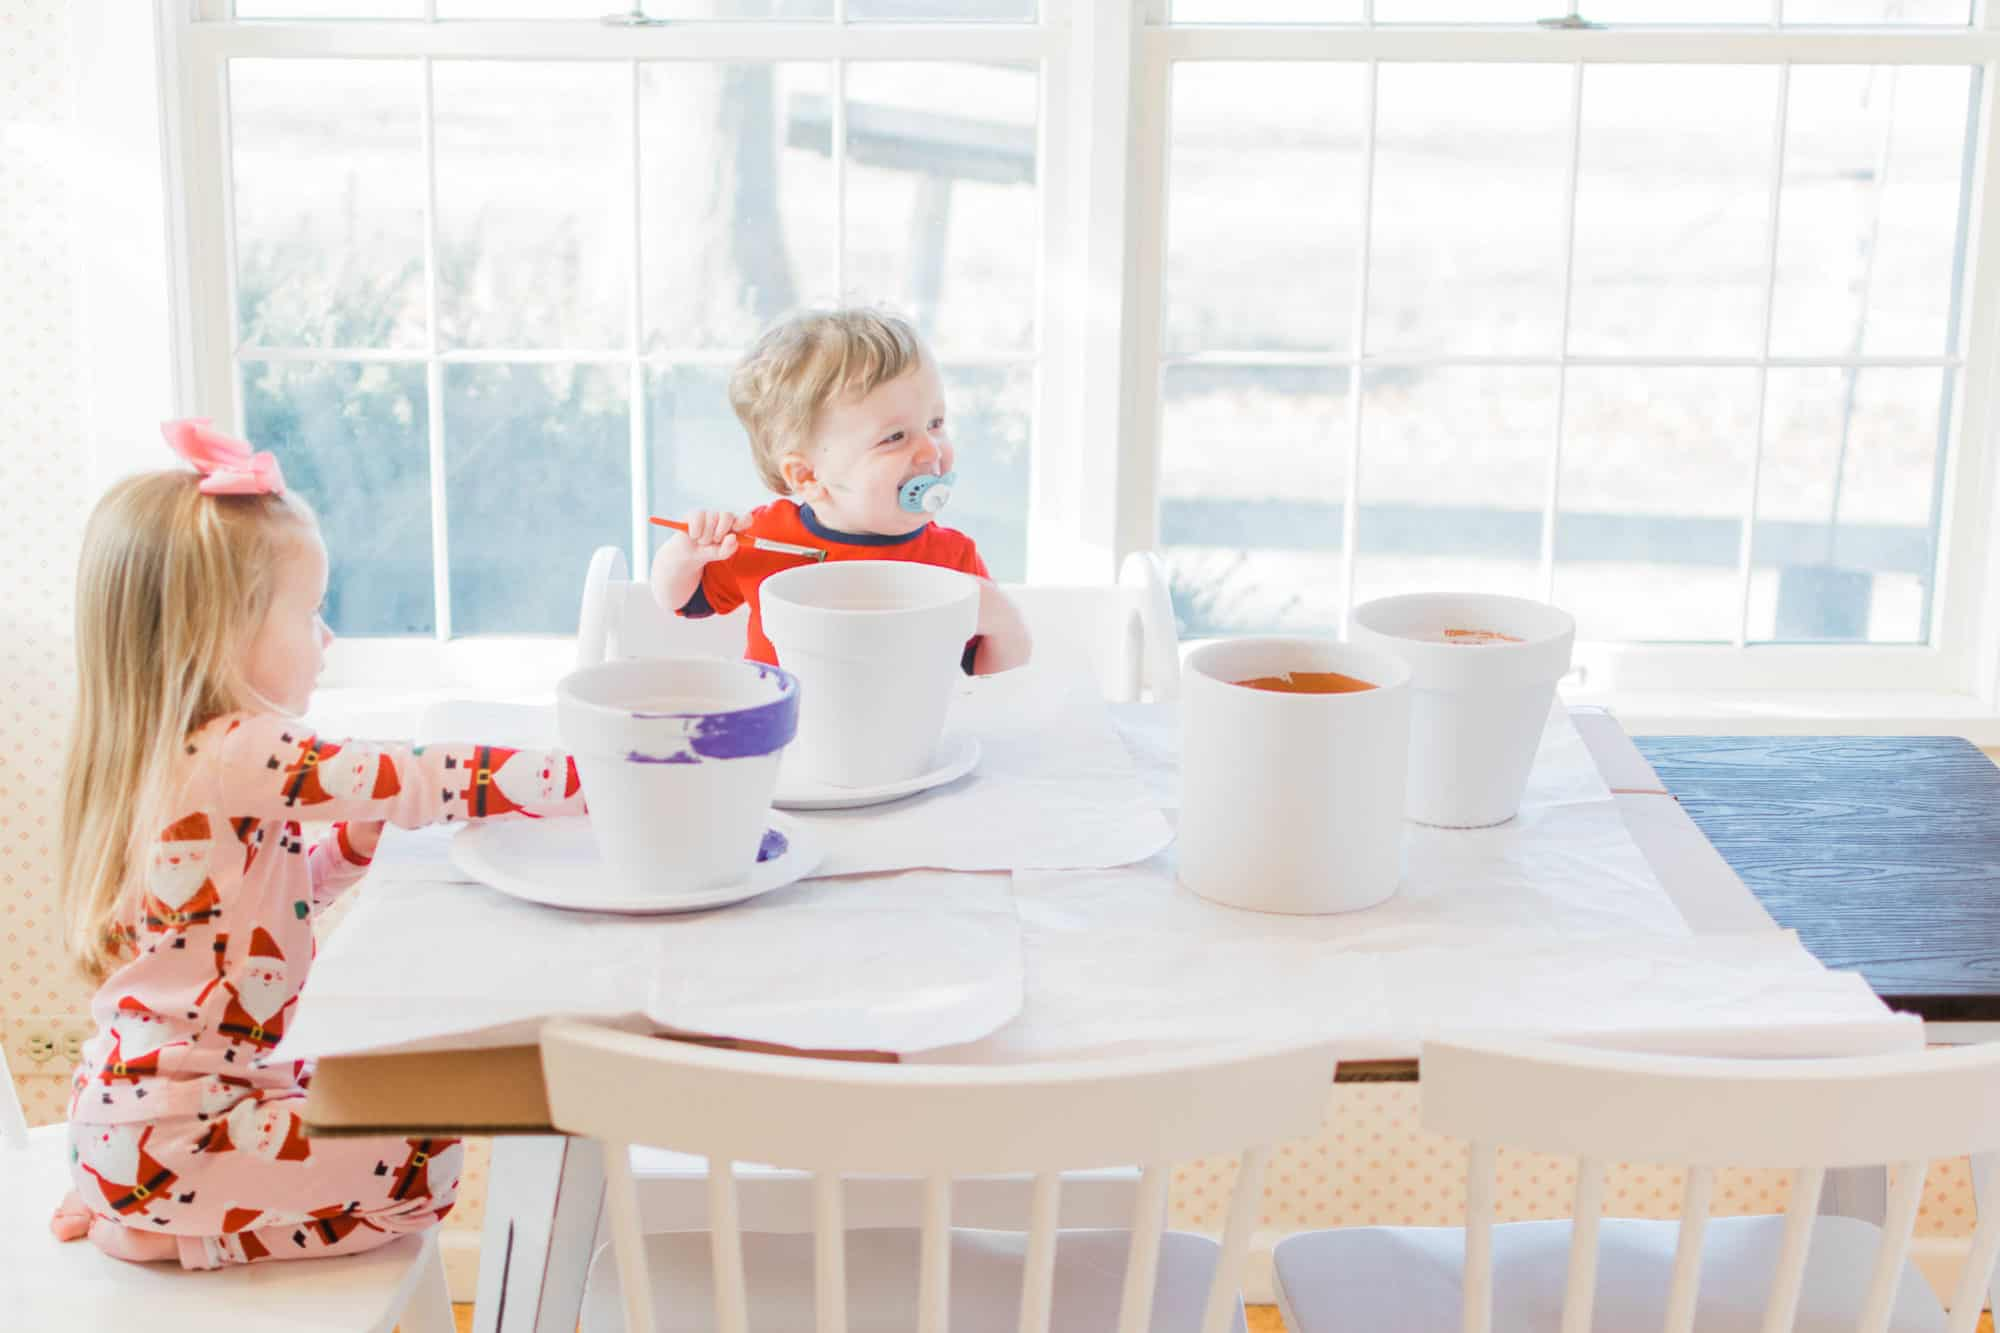 Frenchie Farm gifts kids can make